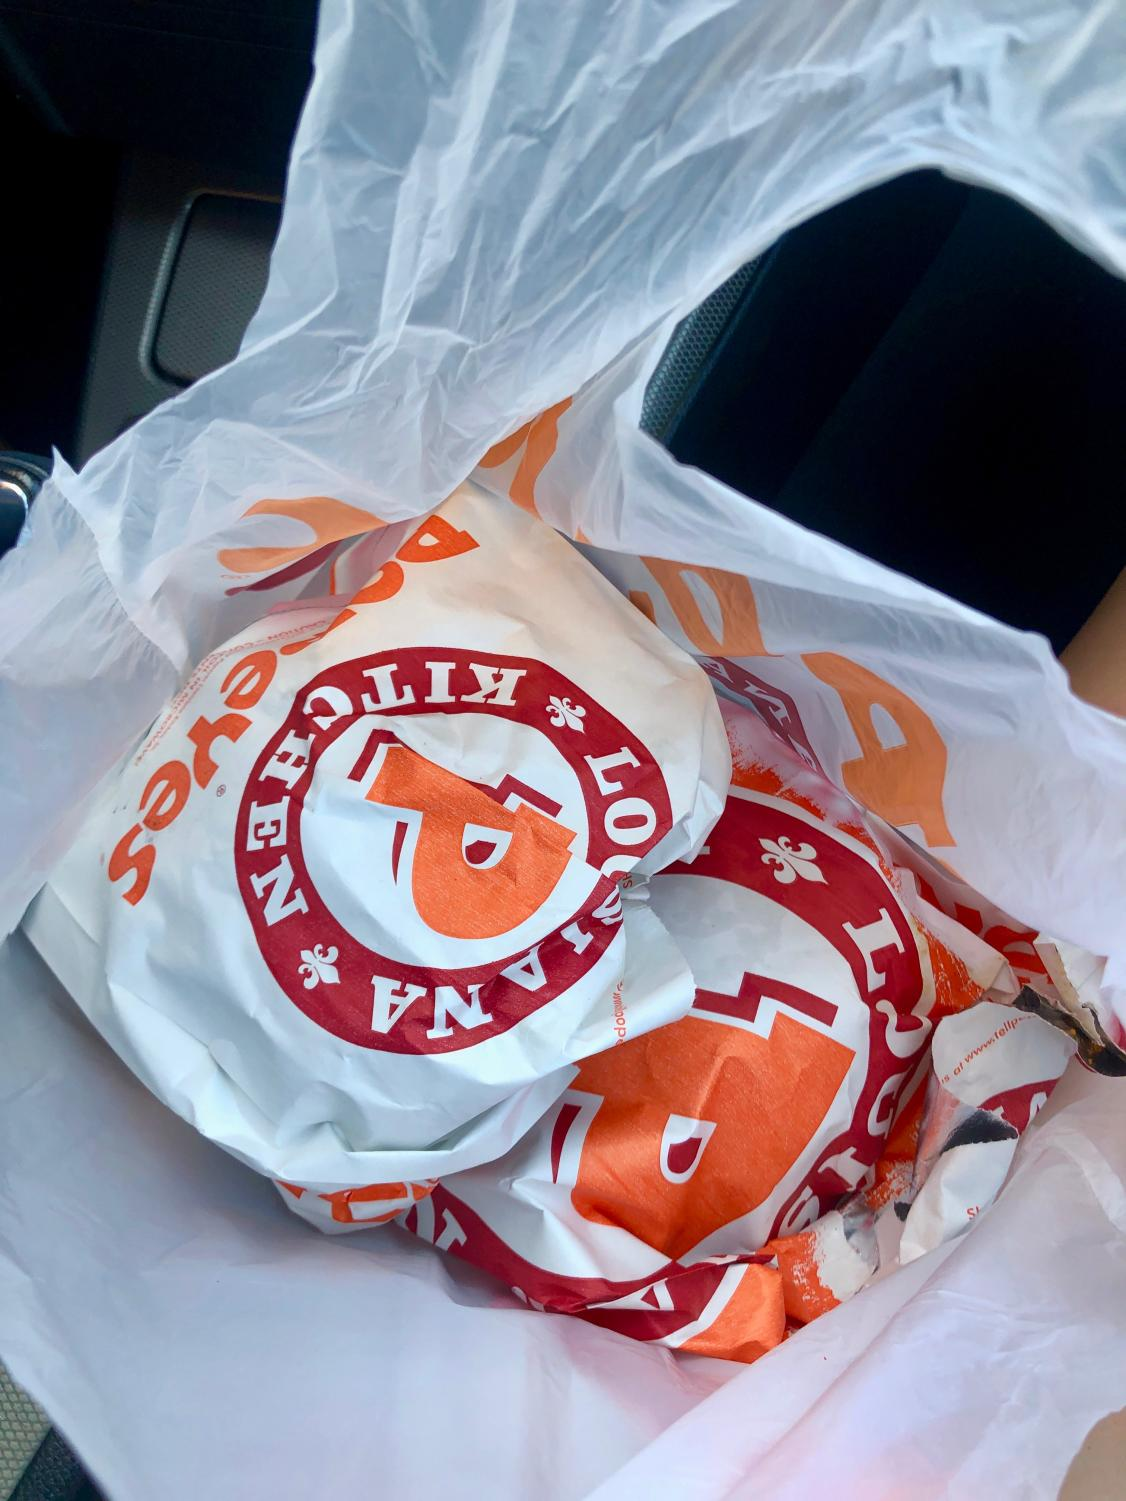 The Perilous Plight of the Popeyes Chicken Sandwich